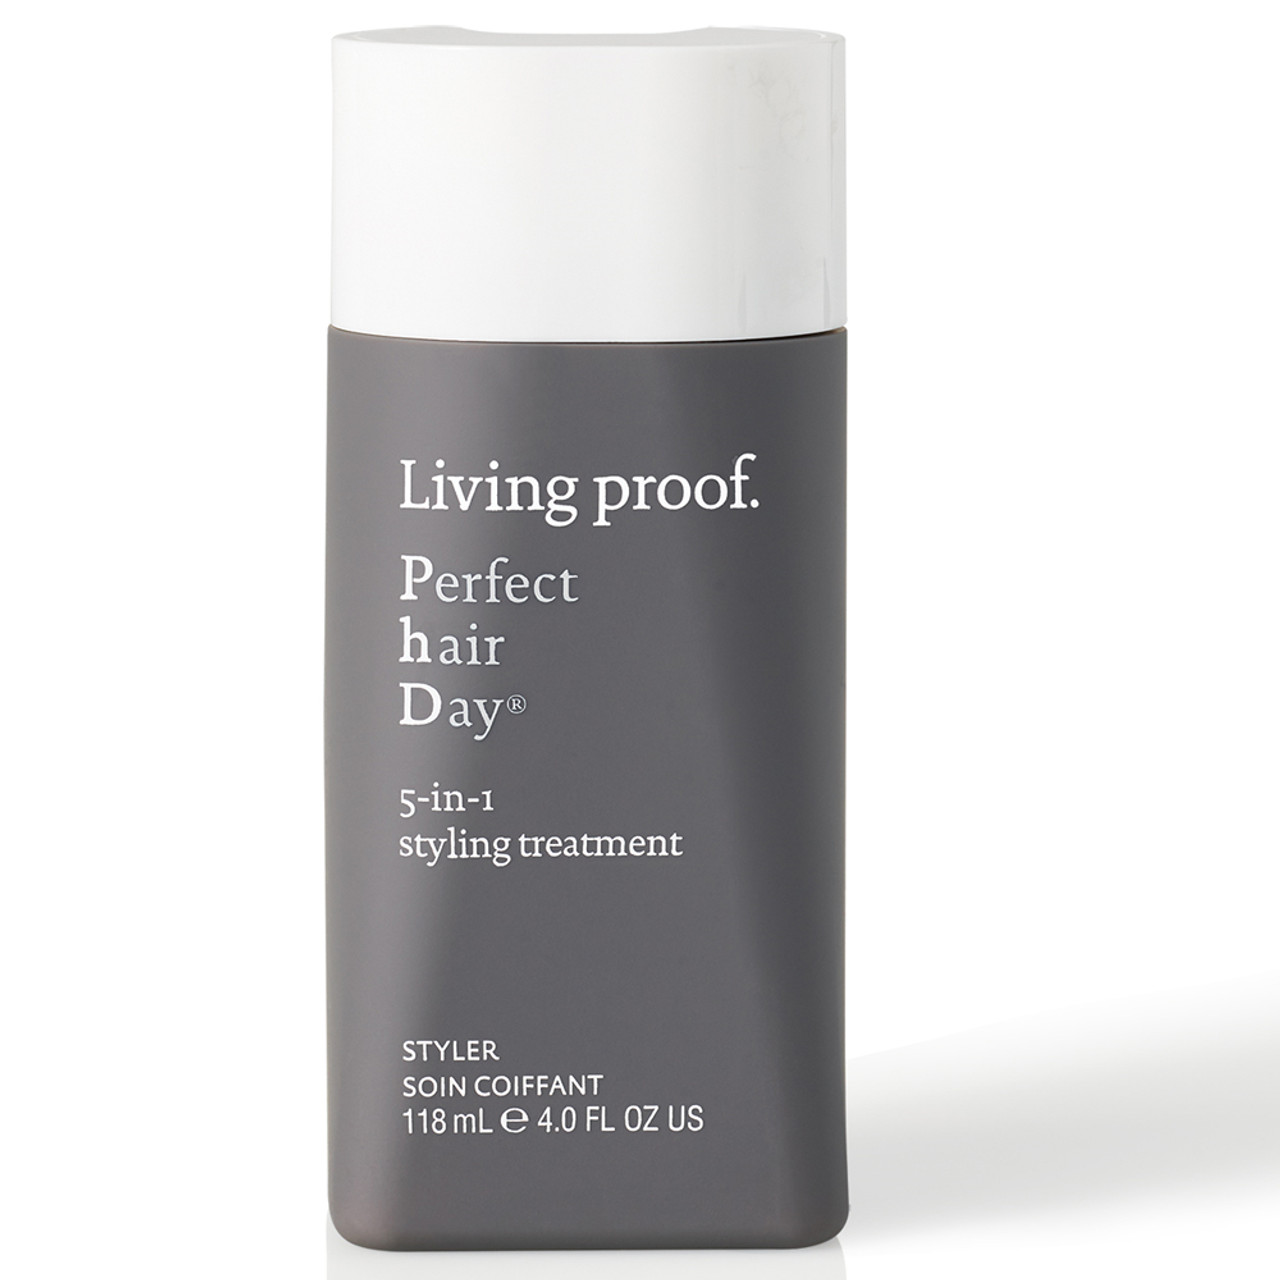 Living Proof Perfect hair Day (PhD) 5-In-1 Styling Treatment